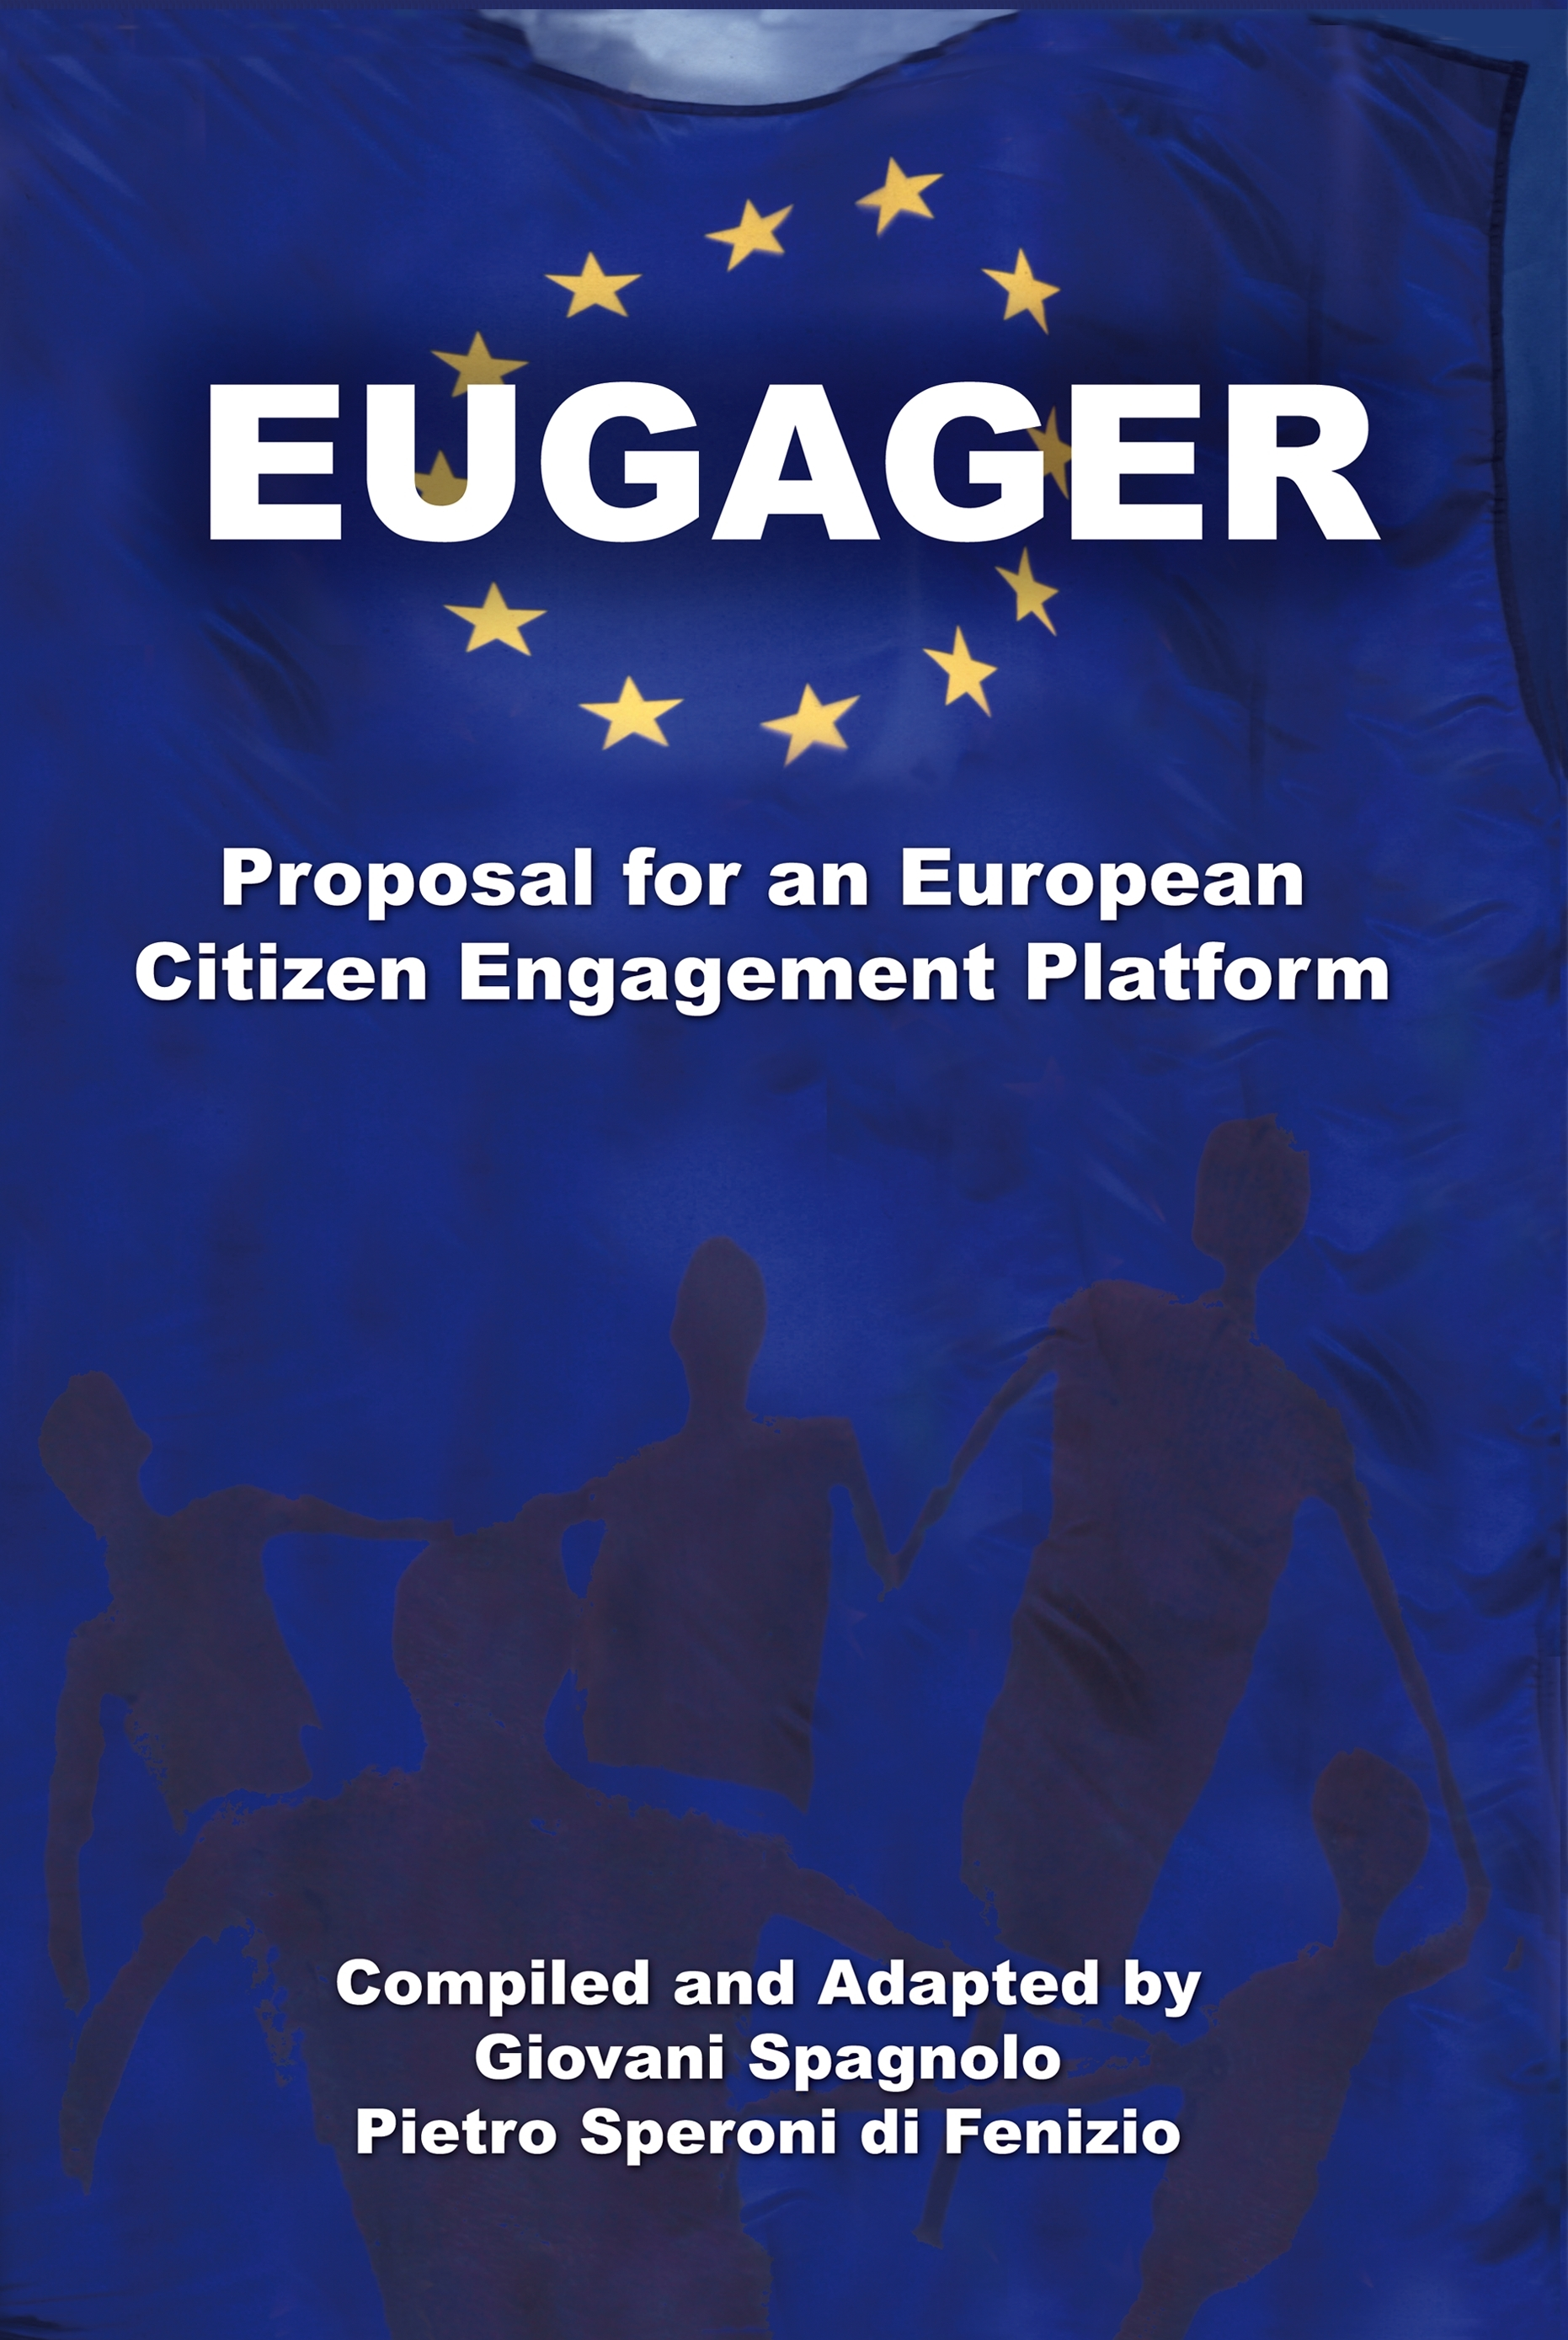 EUGAGER: European Citizen Engagement Platform: Proposal for an European Citizen Engagement Platform